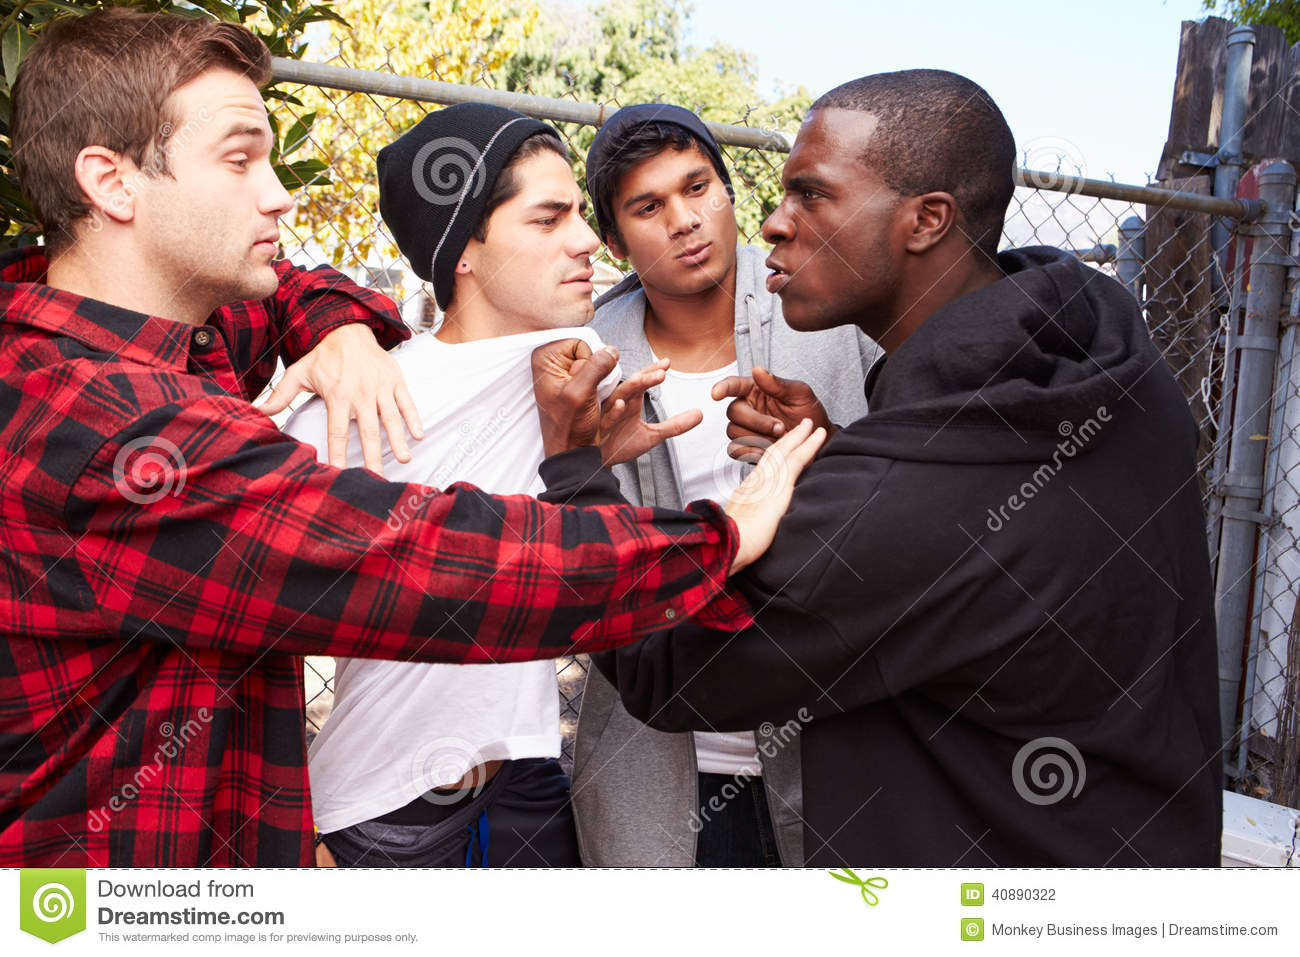 Fight Breaking Out Amongst Gang Members